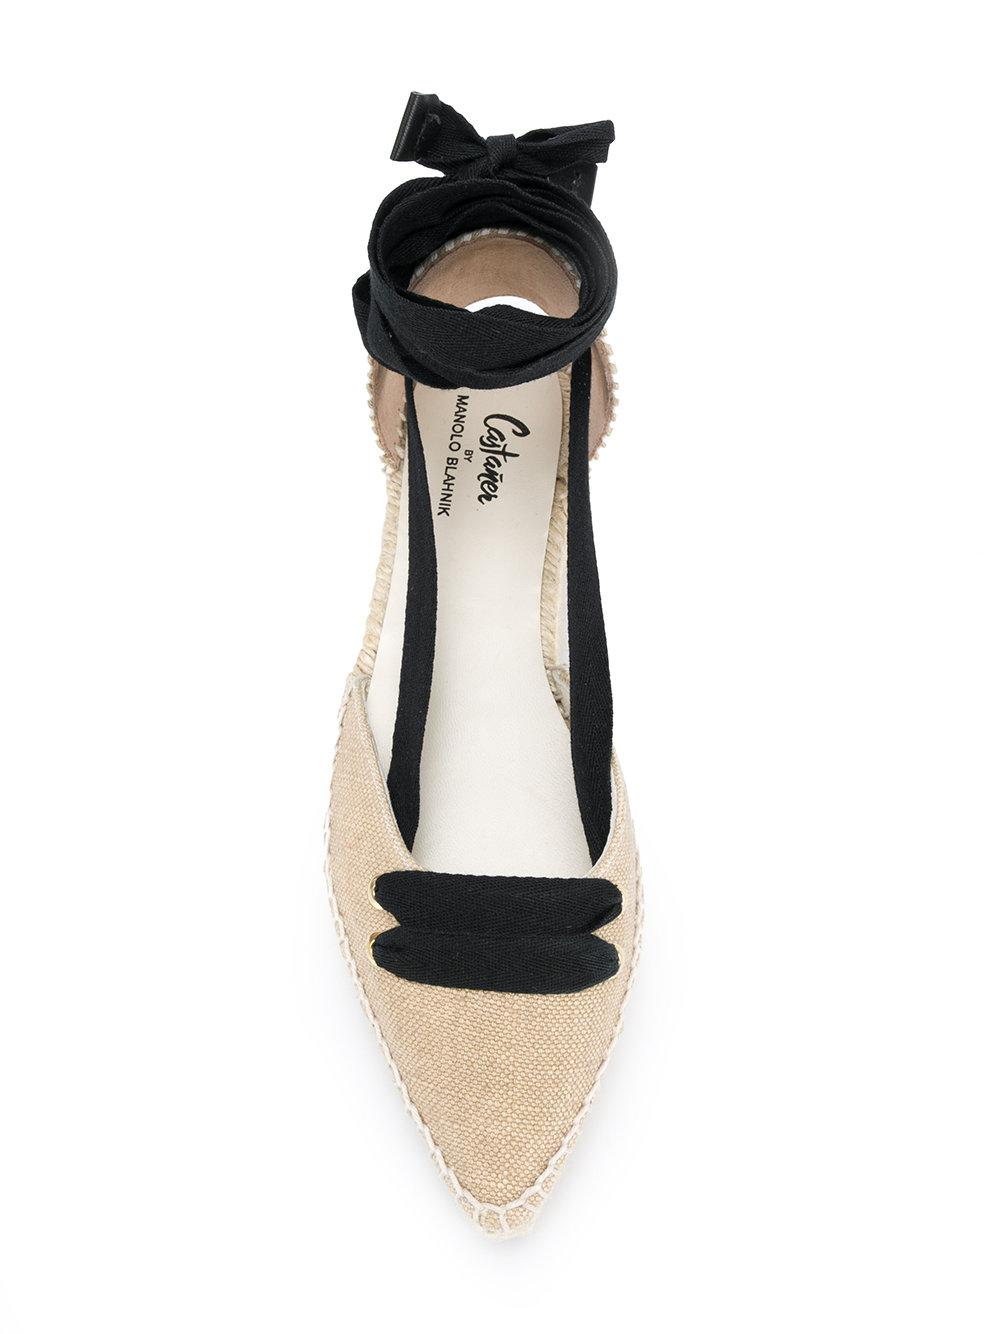 Lyst Manolo Blahnik Lace Up Ballerina Shoes In Natural